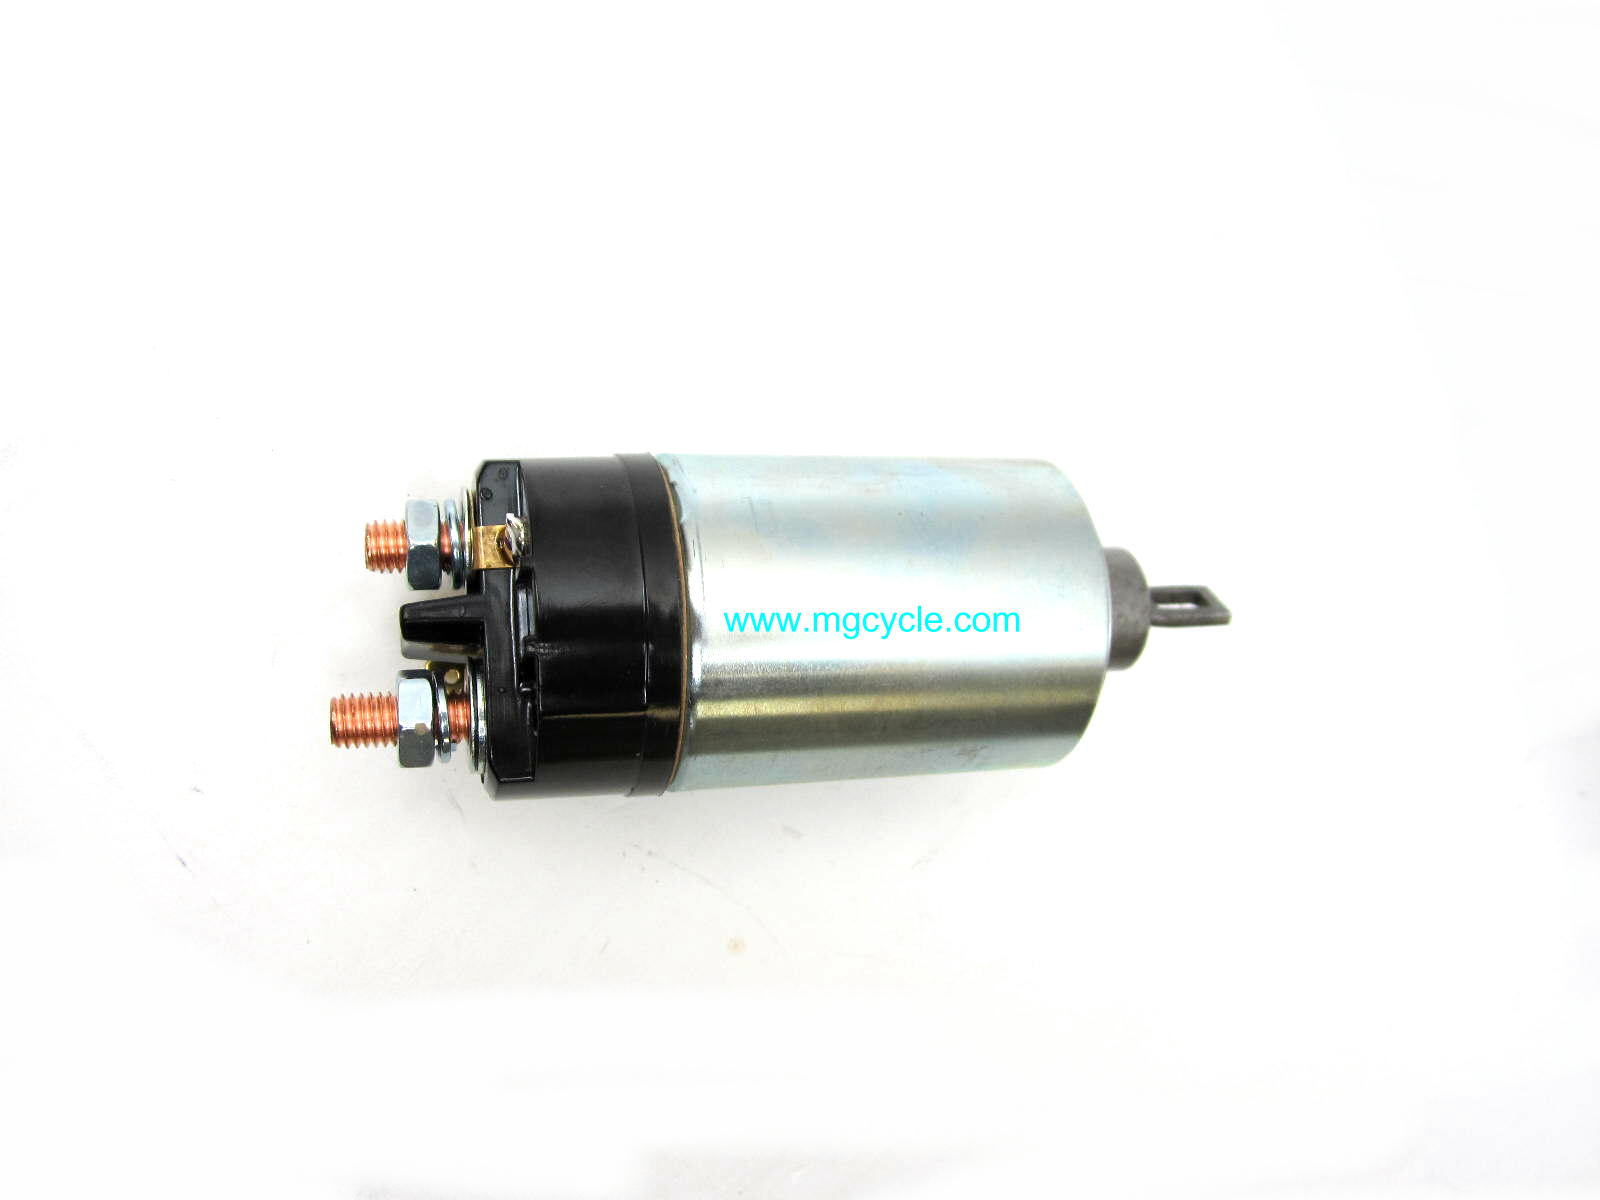 Starter solenoid for Bosch starters 1970's to early 90's